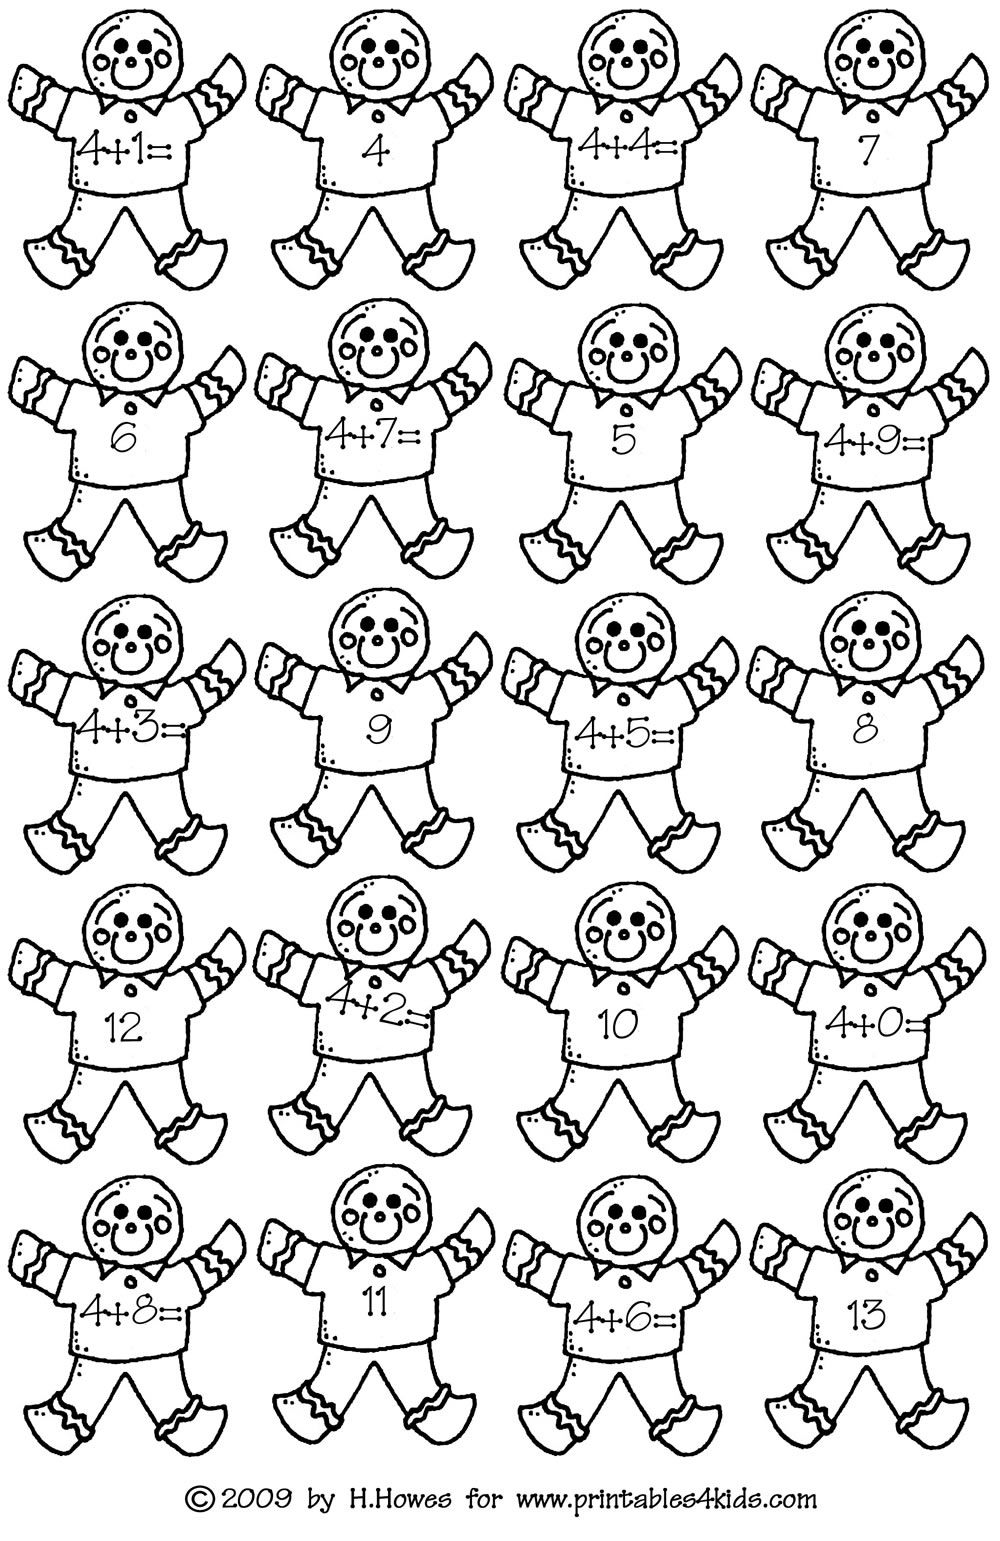 gingerbread math addition facts 4s printables for kids free word search puzzles coloring. Black Bedroom Furniture Sets. Home Design Ideas